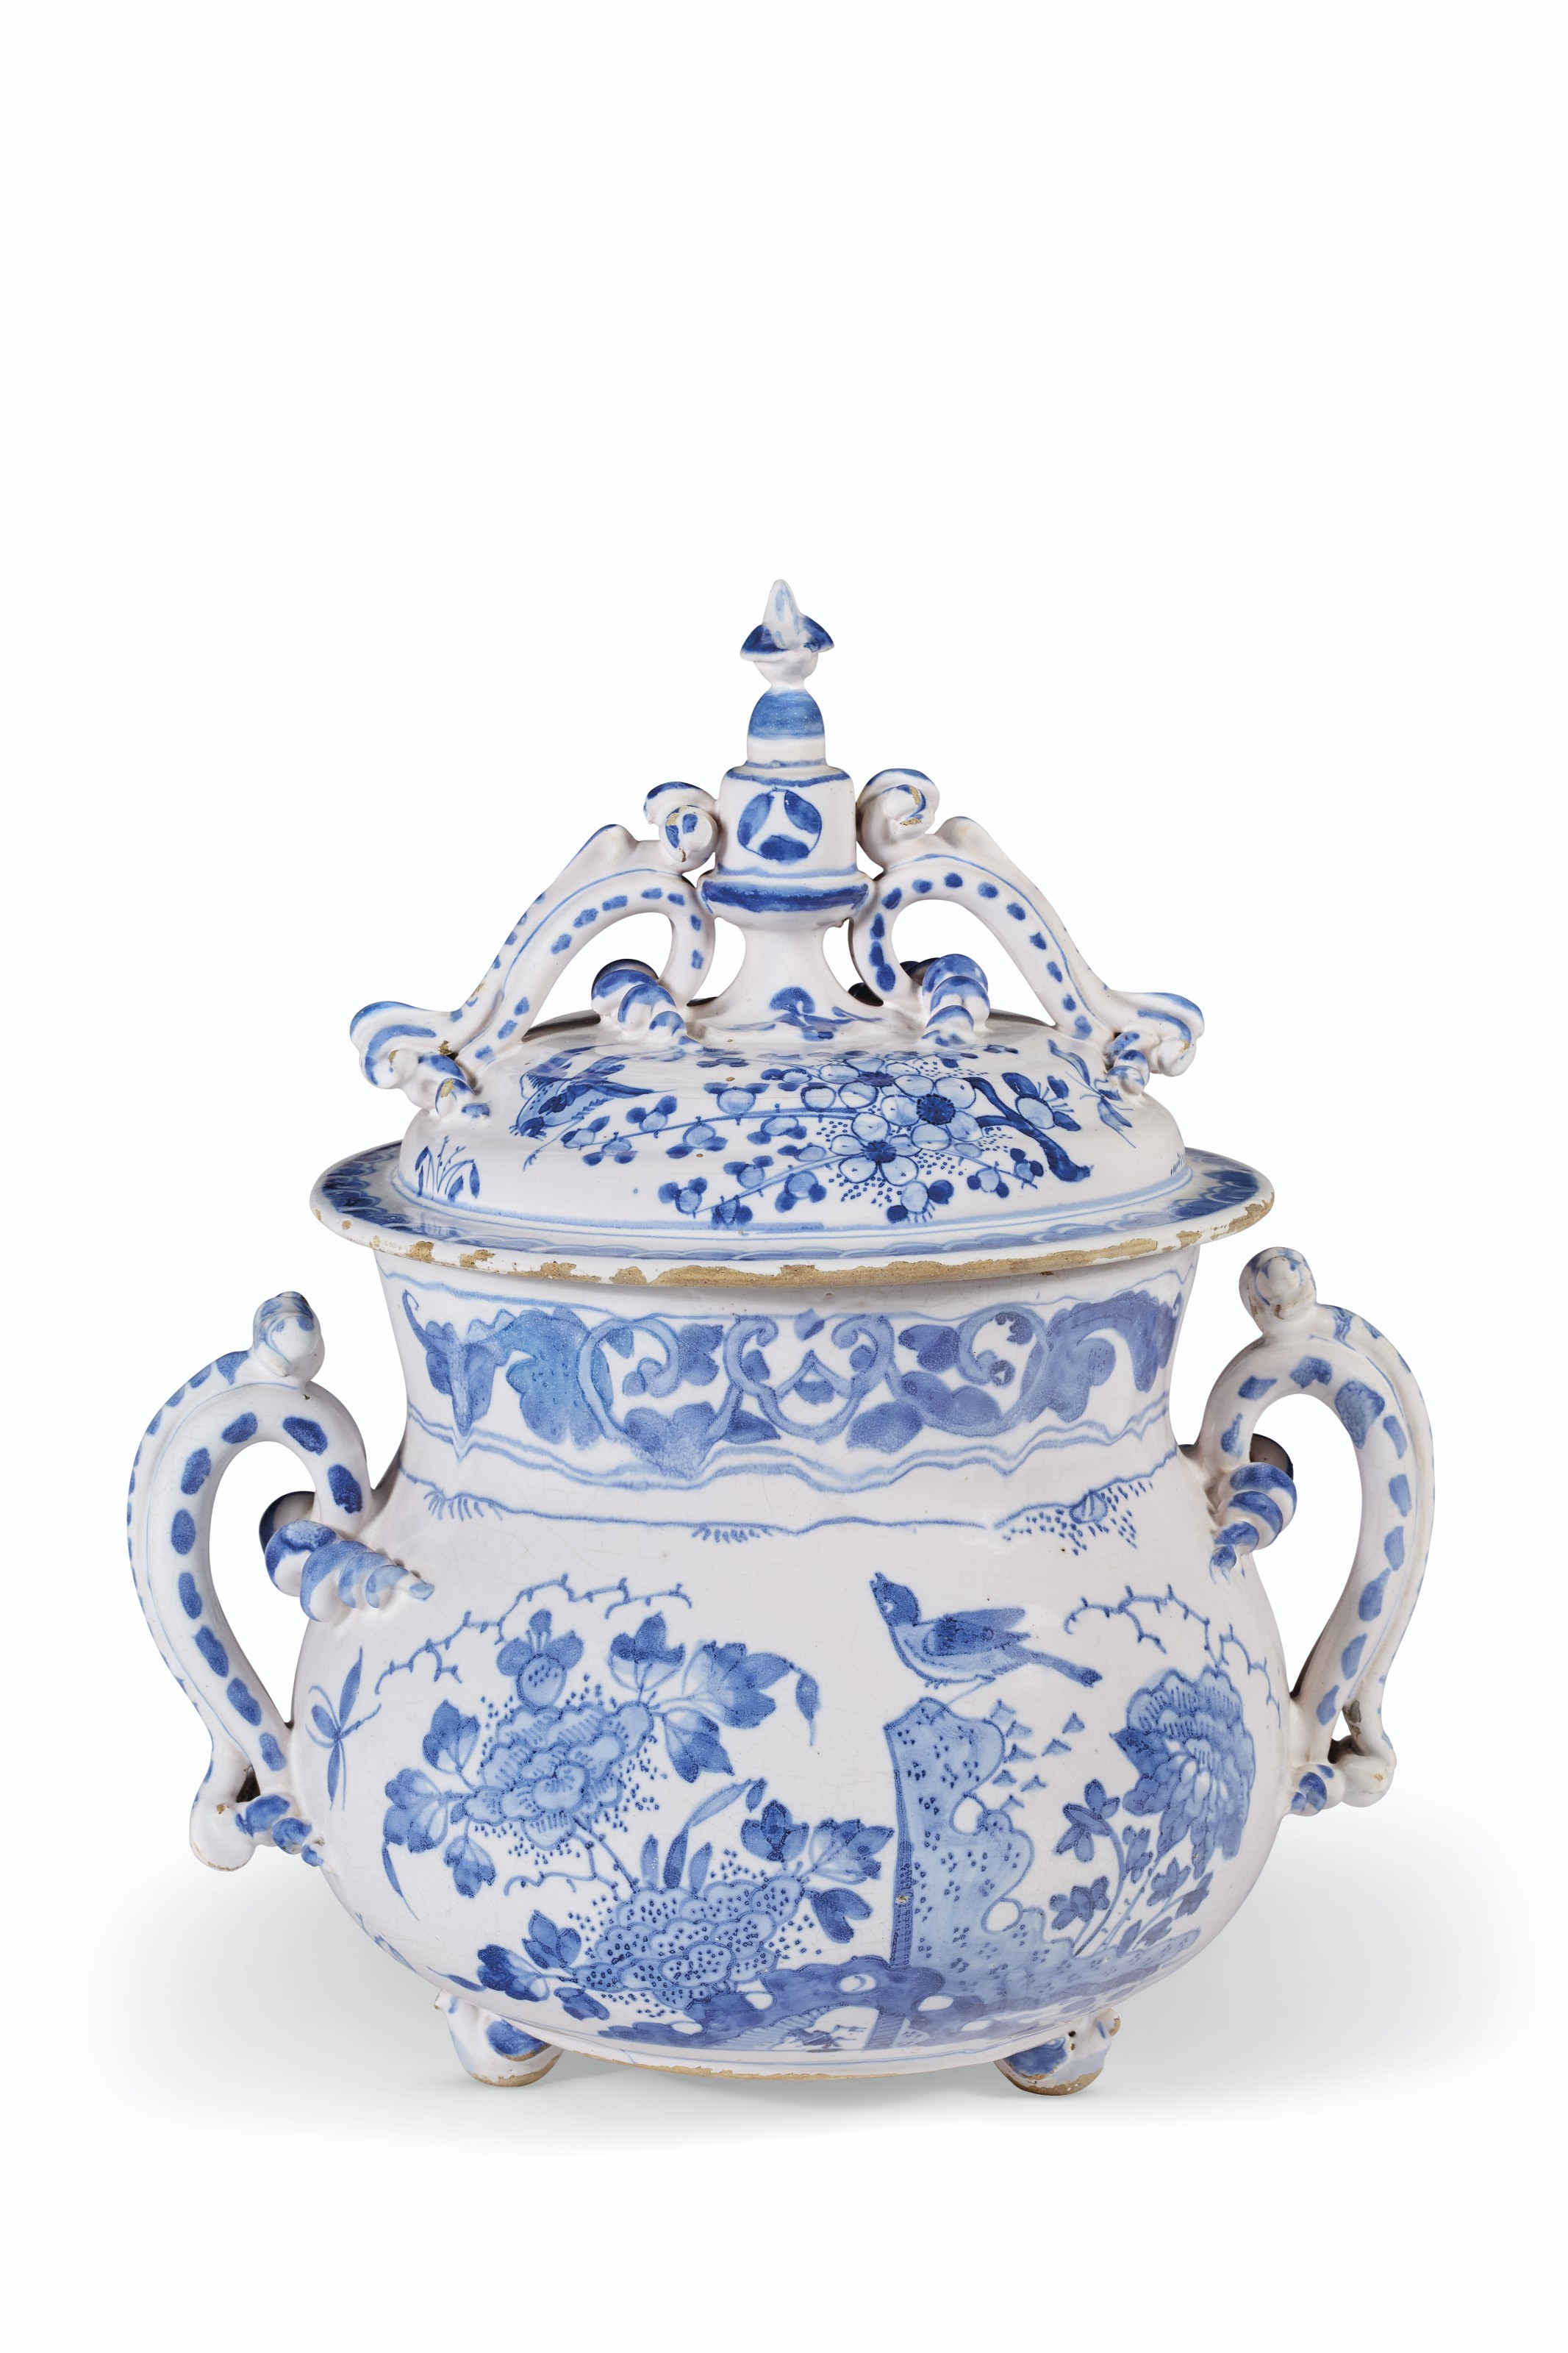 AN ENGLISH DELFT BLUE AND WHITE DATED AND INITIALED POSSET-POT AND COVER